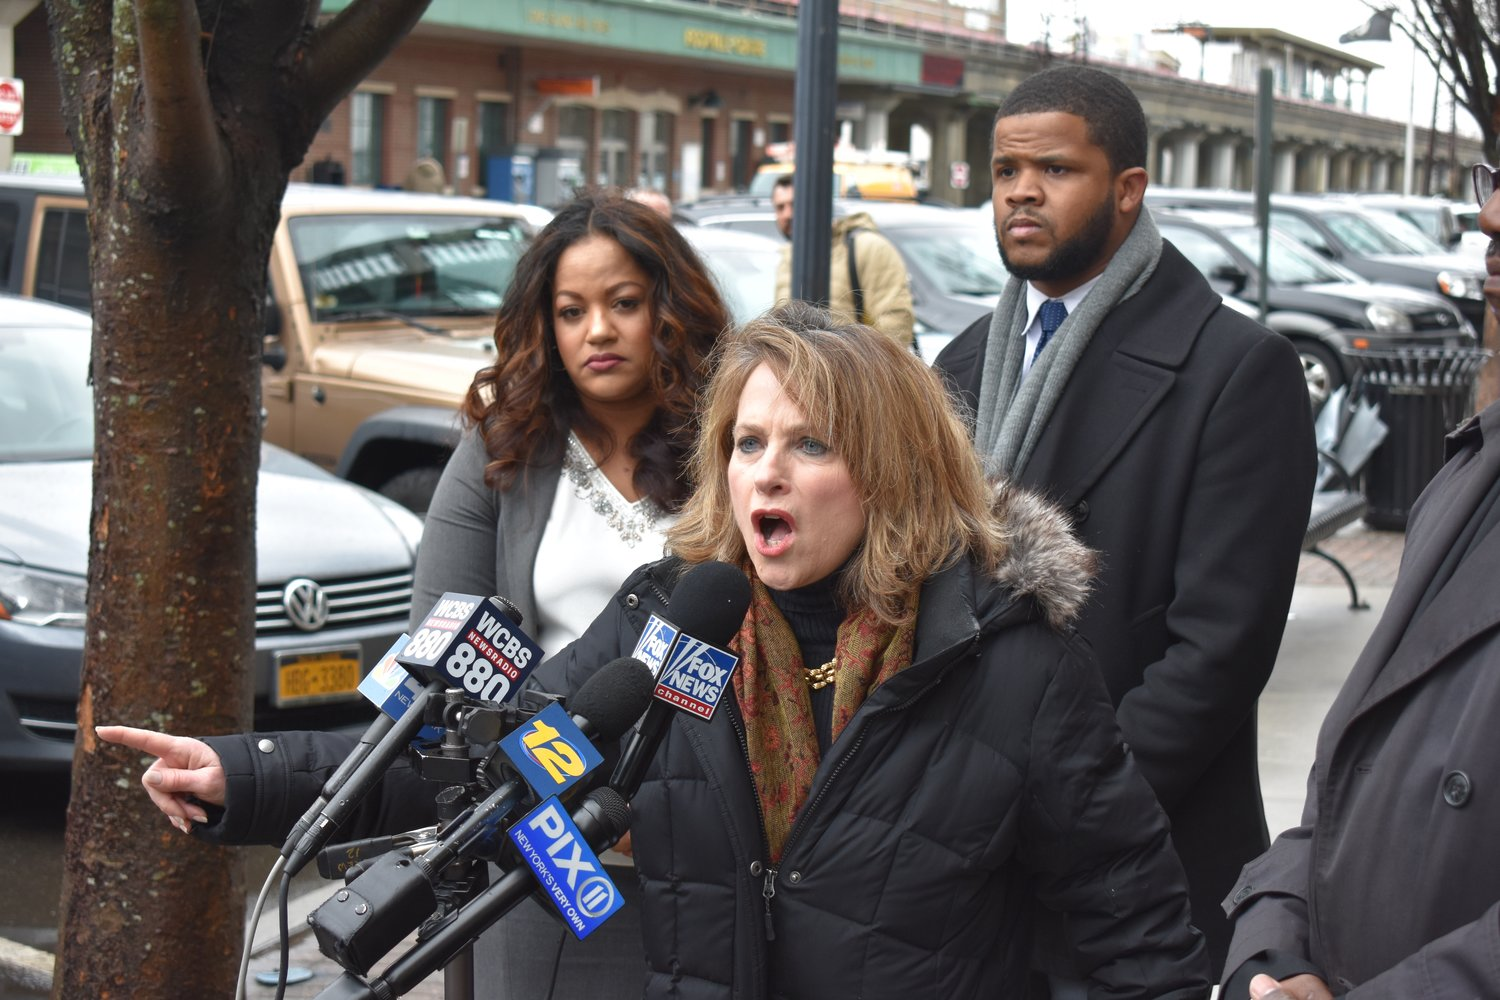 Rockville Centre resident Liz Boylan, alongside Assemblywoman Jaime Williams, left, and Abu Edwards, director of state affairs for Smart Approaches to Marijuana, spoke out against legalizing recreational marijuana in New York.